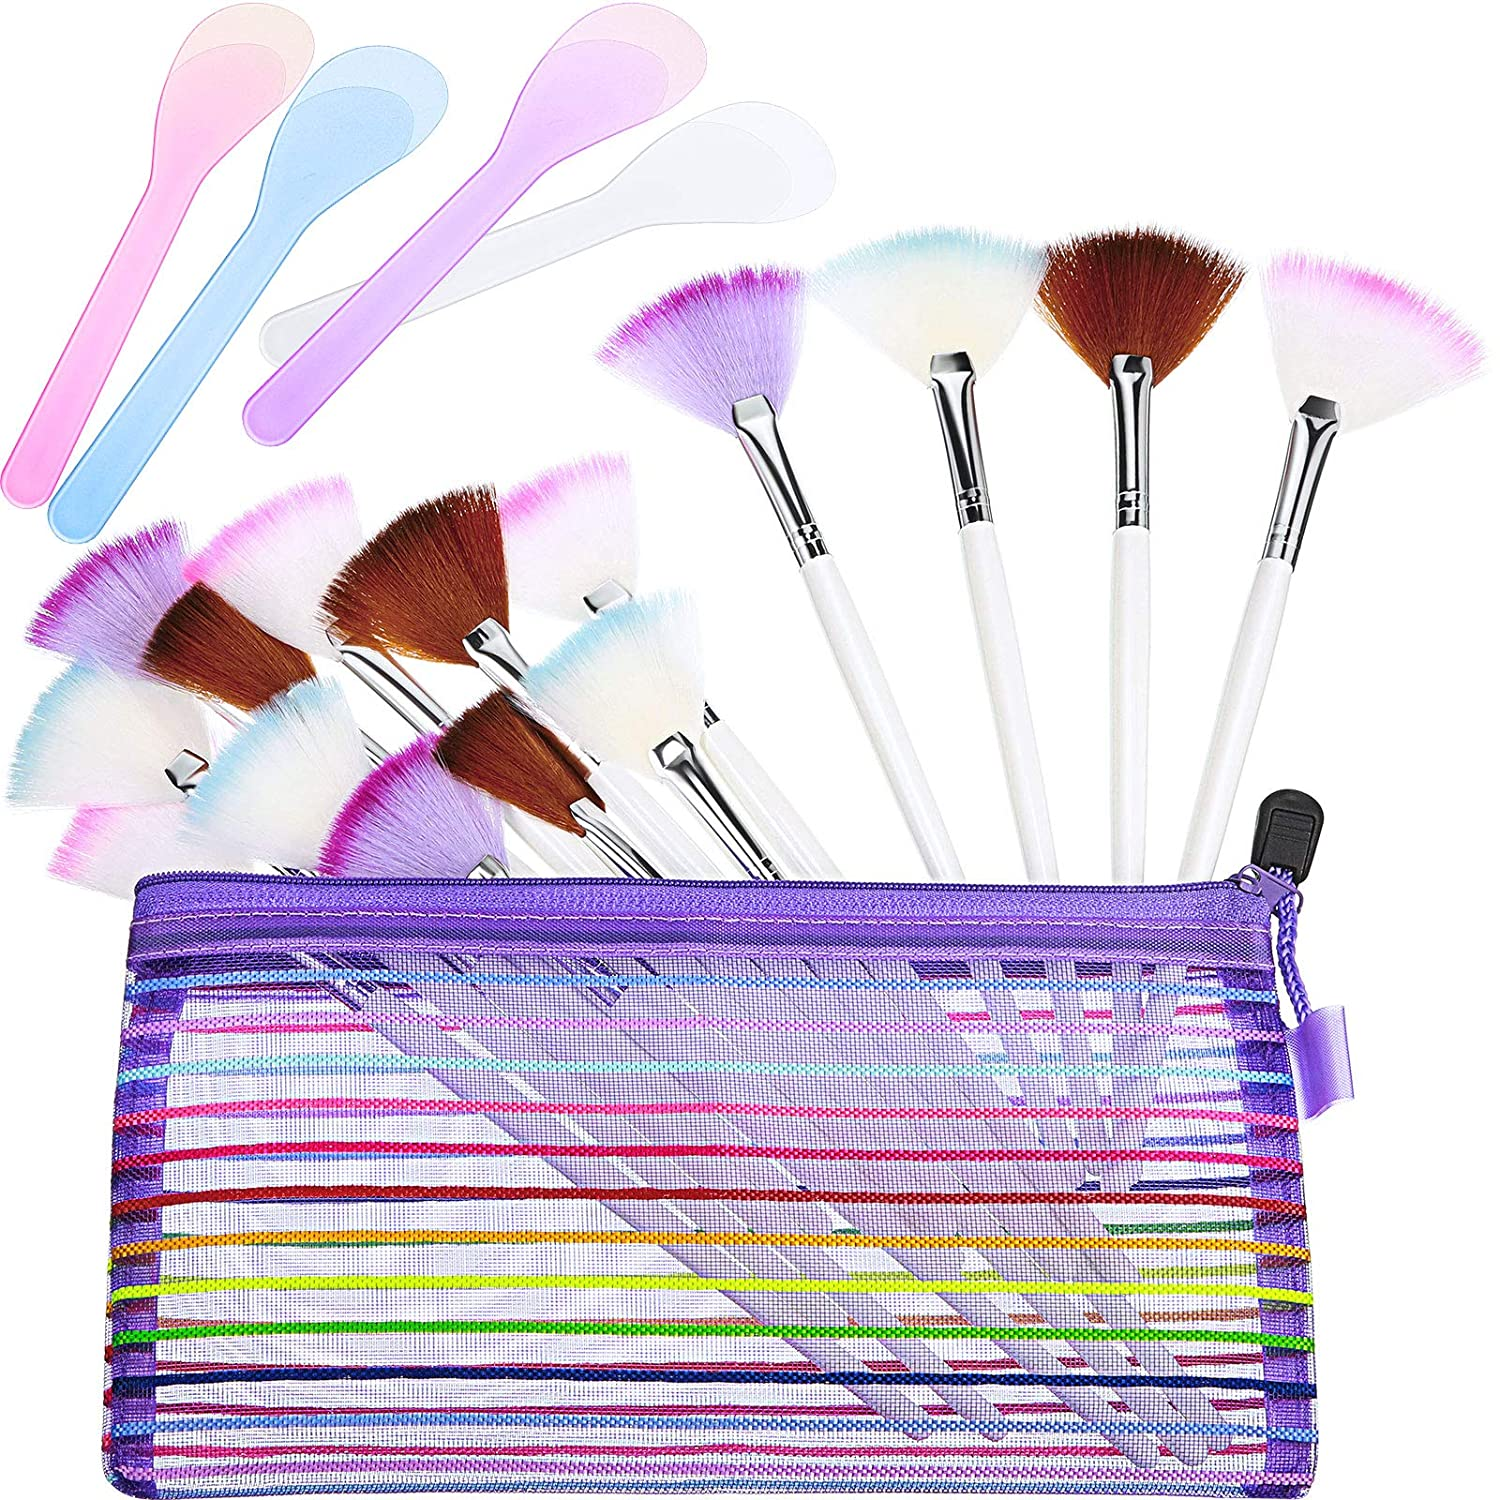 16 Pieces Facial Fan Mask Brush and 4 Piece Cosmetic Mask Spoon Spatulas Mask Application Fan Brush Soft Glycolic Fan Brush Boar Head Fan Brush Applicator for Peel Mask Makeup: Beauty